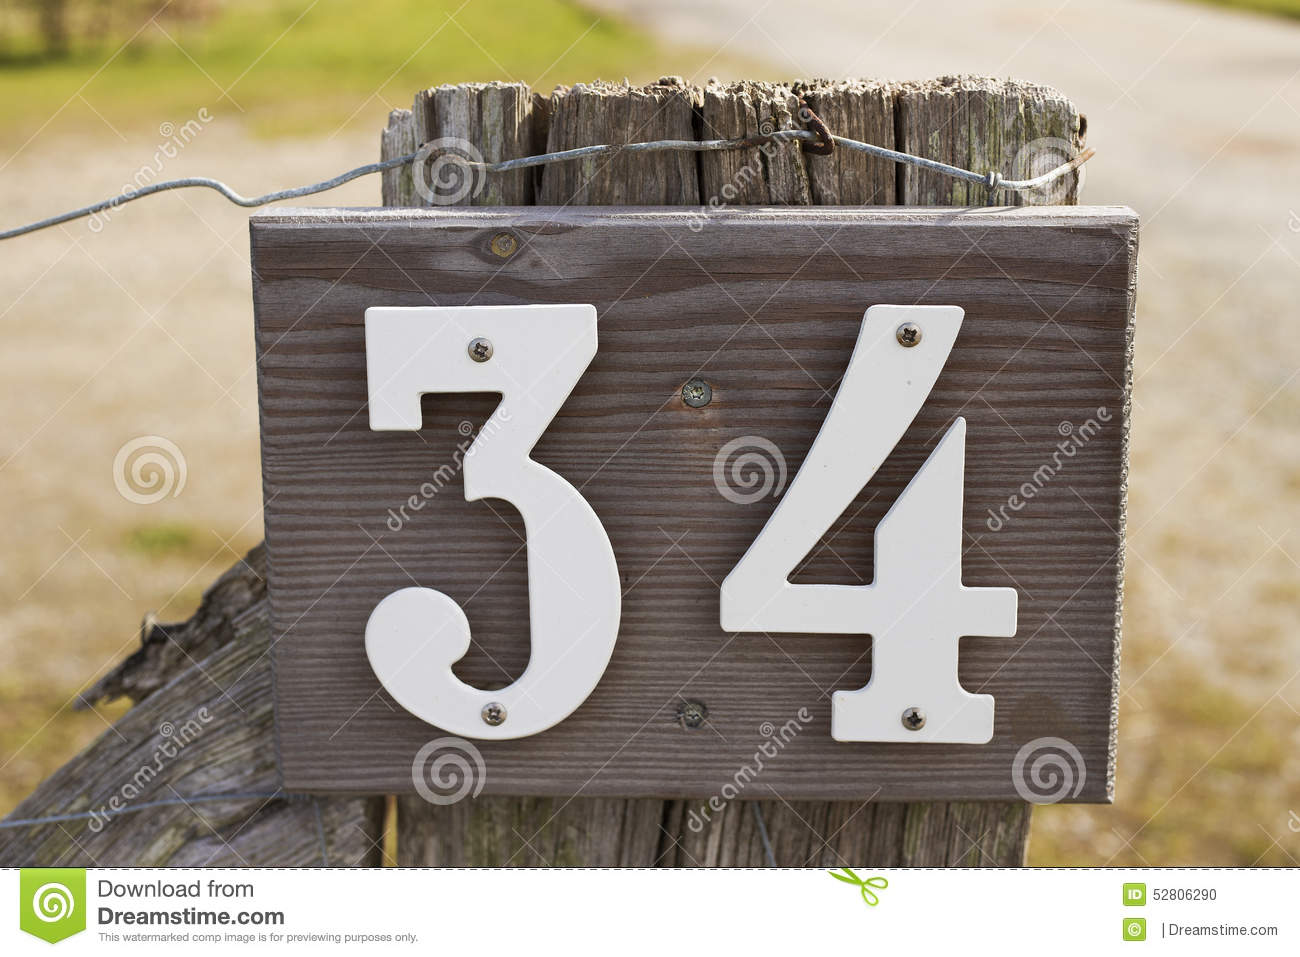 A wooden sign with 'house number 34' in white letters